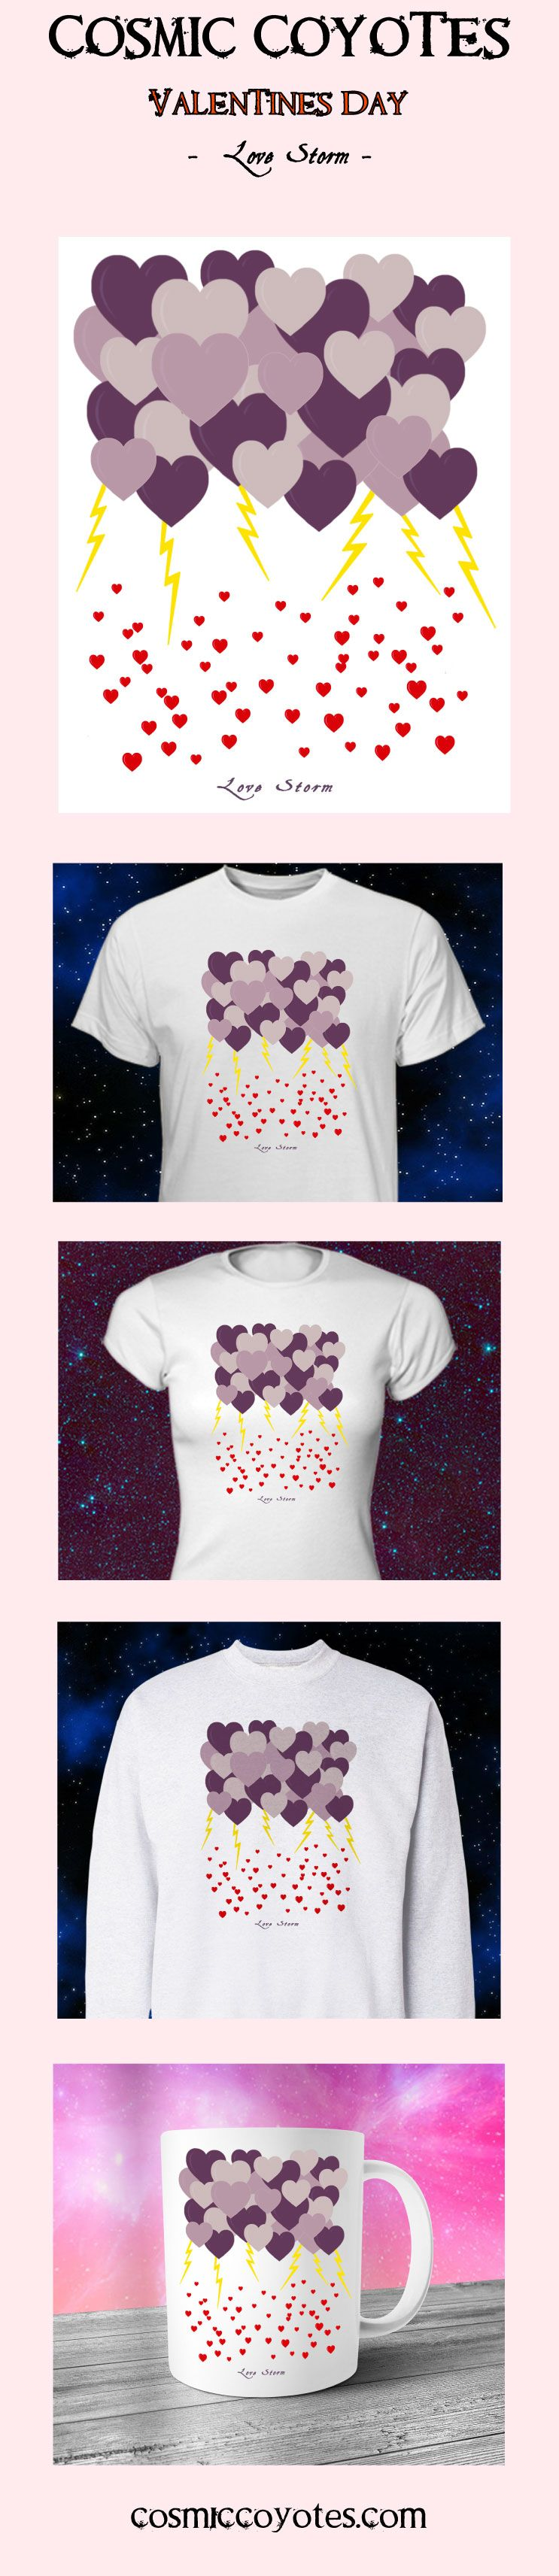 Valentines Day Gift - Love Storm - T-Shirt - Hearts of Love - Love Gift - Love Actually - Gift for Her - Girlfriend Gift - Regalo De Amor  One of our newest unique designs!  Treat yourself or your loved one to this beautiful one-of-a-kind design, composed of deep purple, lavender, and mauve storm heart-clouds, brilliant lightning bolts, and a gentle rain of bright red hearts.  A perfect gift for yourself or someone special!